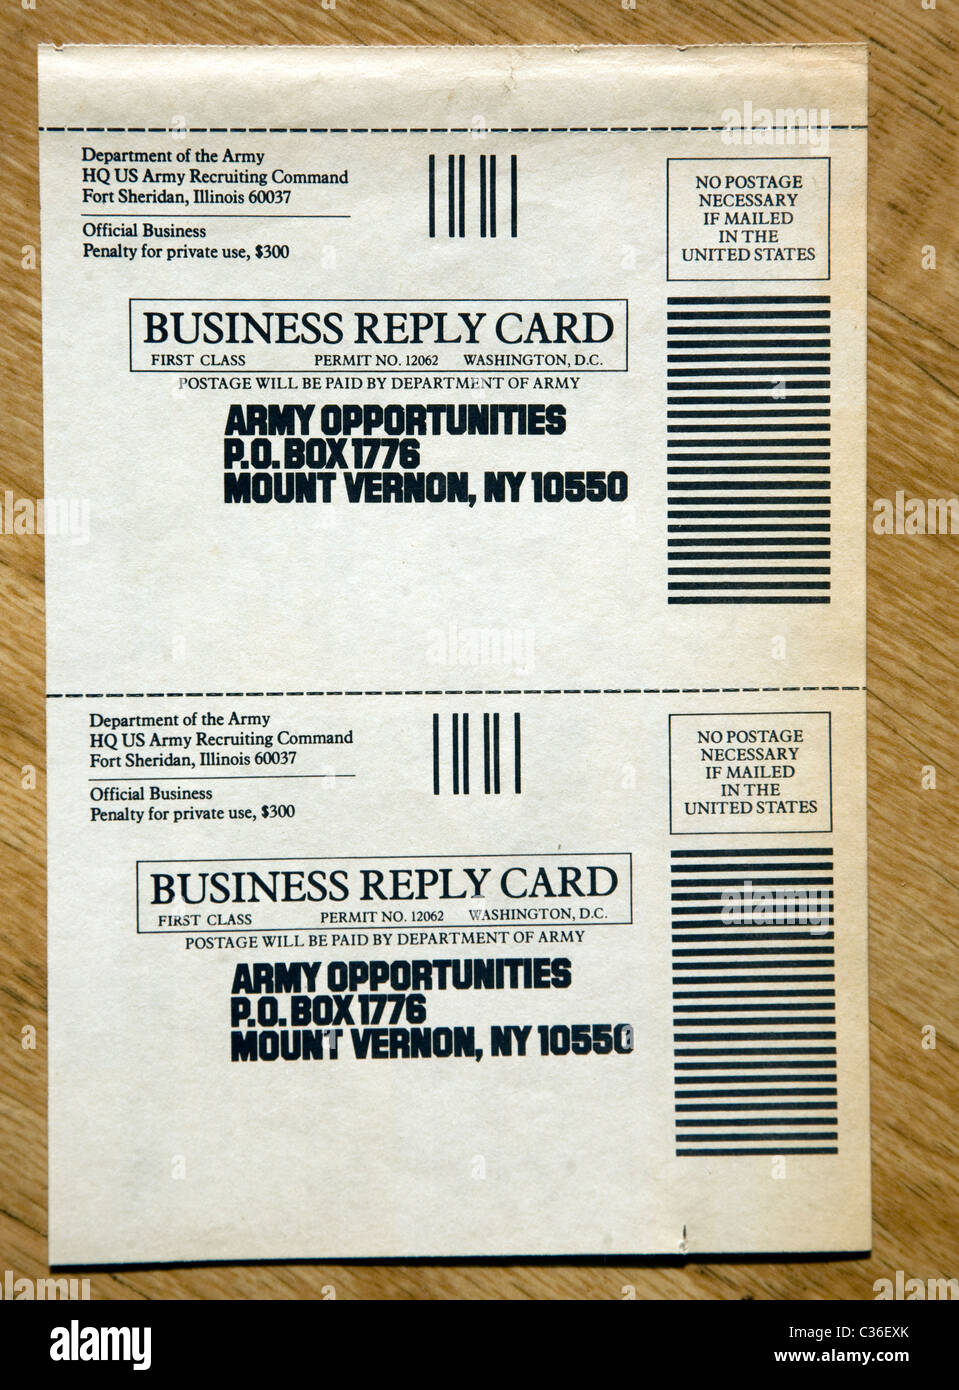 Business reply card usa army recruitment advert 1970s us military business reply card usa army recruitment advert 1970s us military reheart Gallery